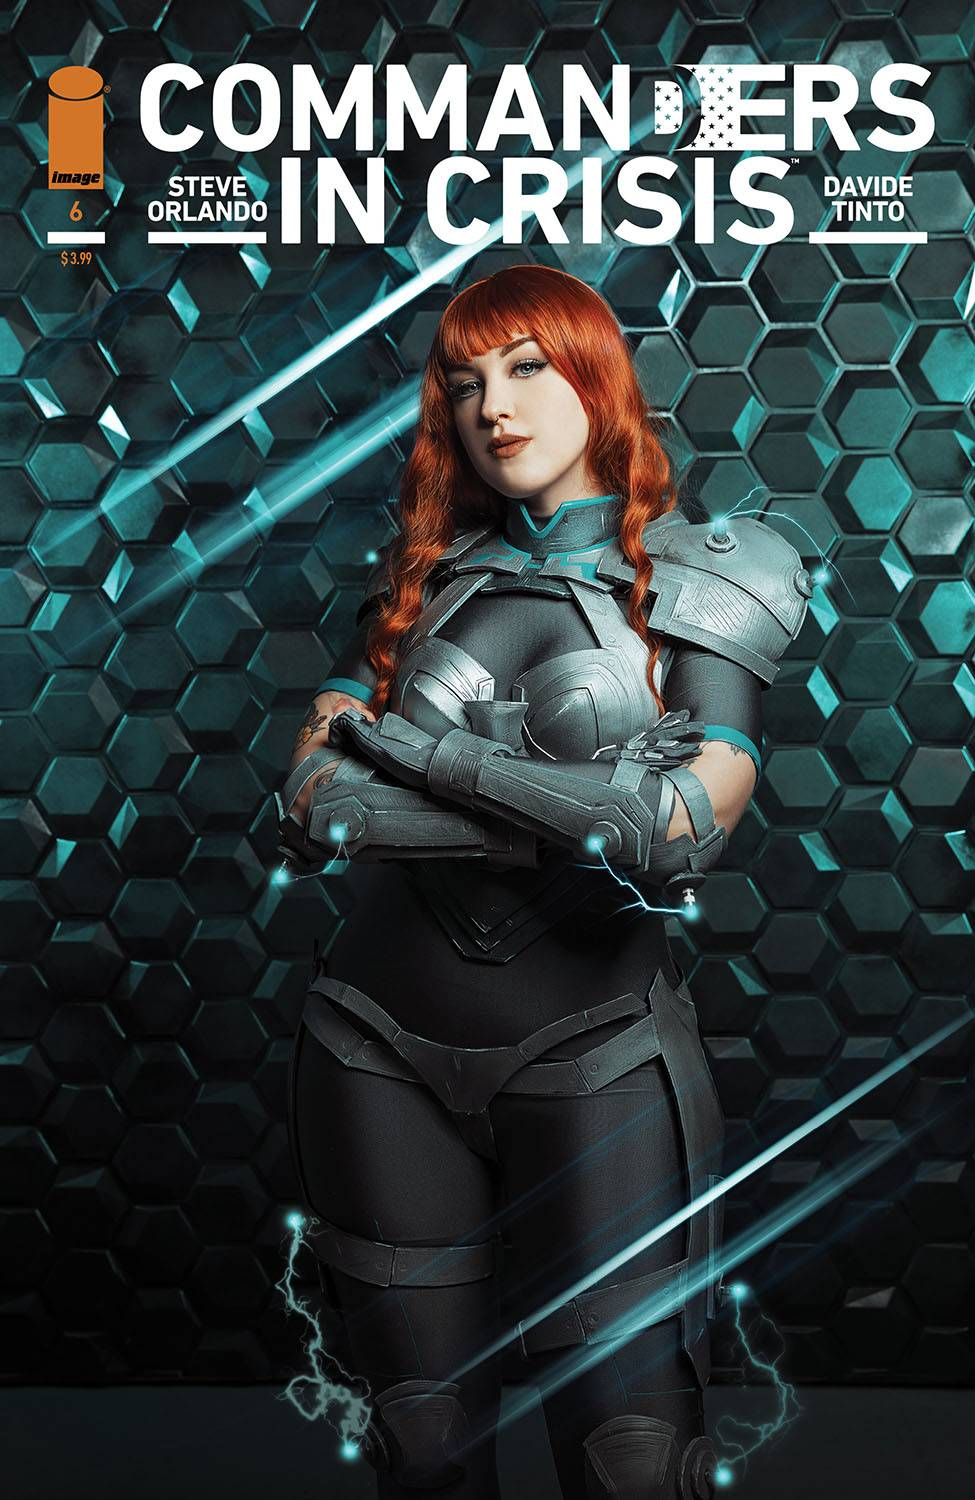 COMMANDERS IN CRISIS #6 (OF 12) CVR C COSPLAY PHOTO CVR (MR). - Linebreakers